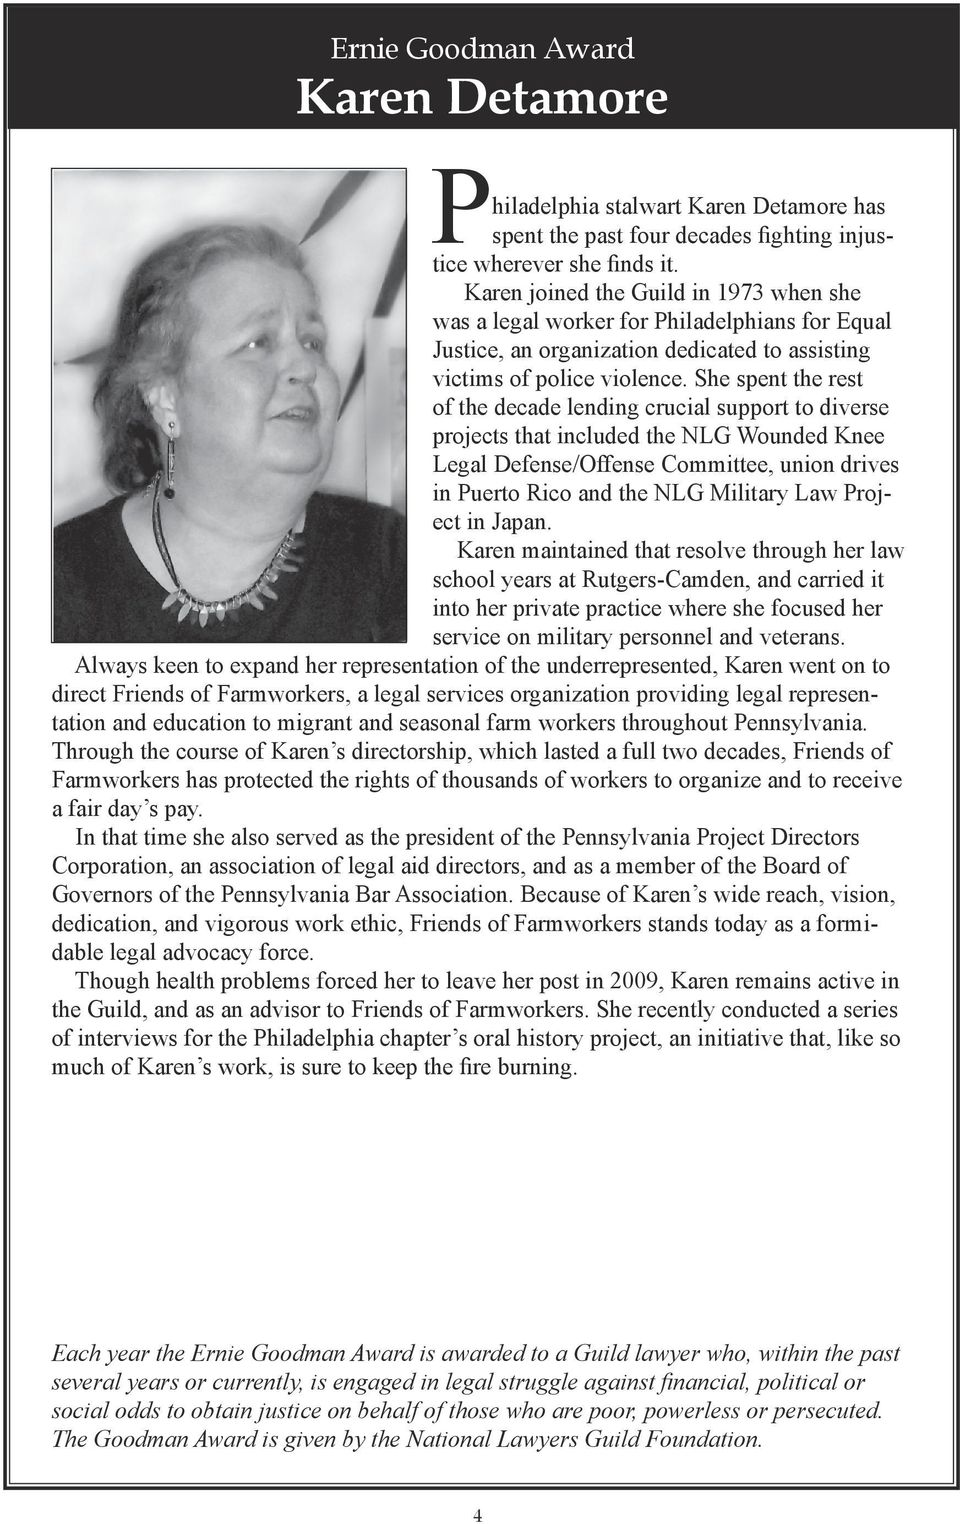 She spent the rest of the decade lending crucial support to diverse projects that included the NLG Wounded Knee Legal Defense/Offense Committee, union drives in Puerto Rico and the NLG Military Law